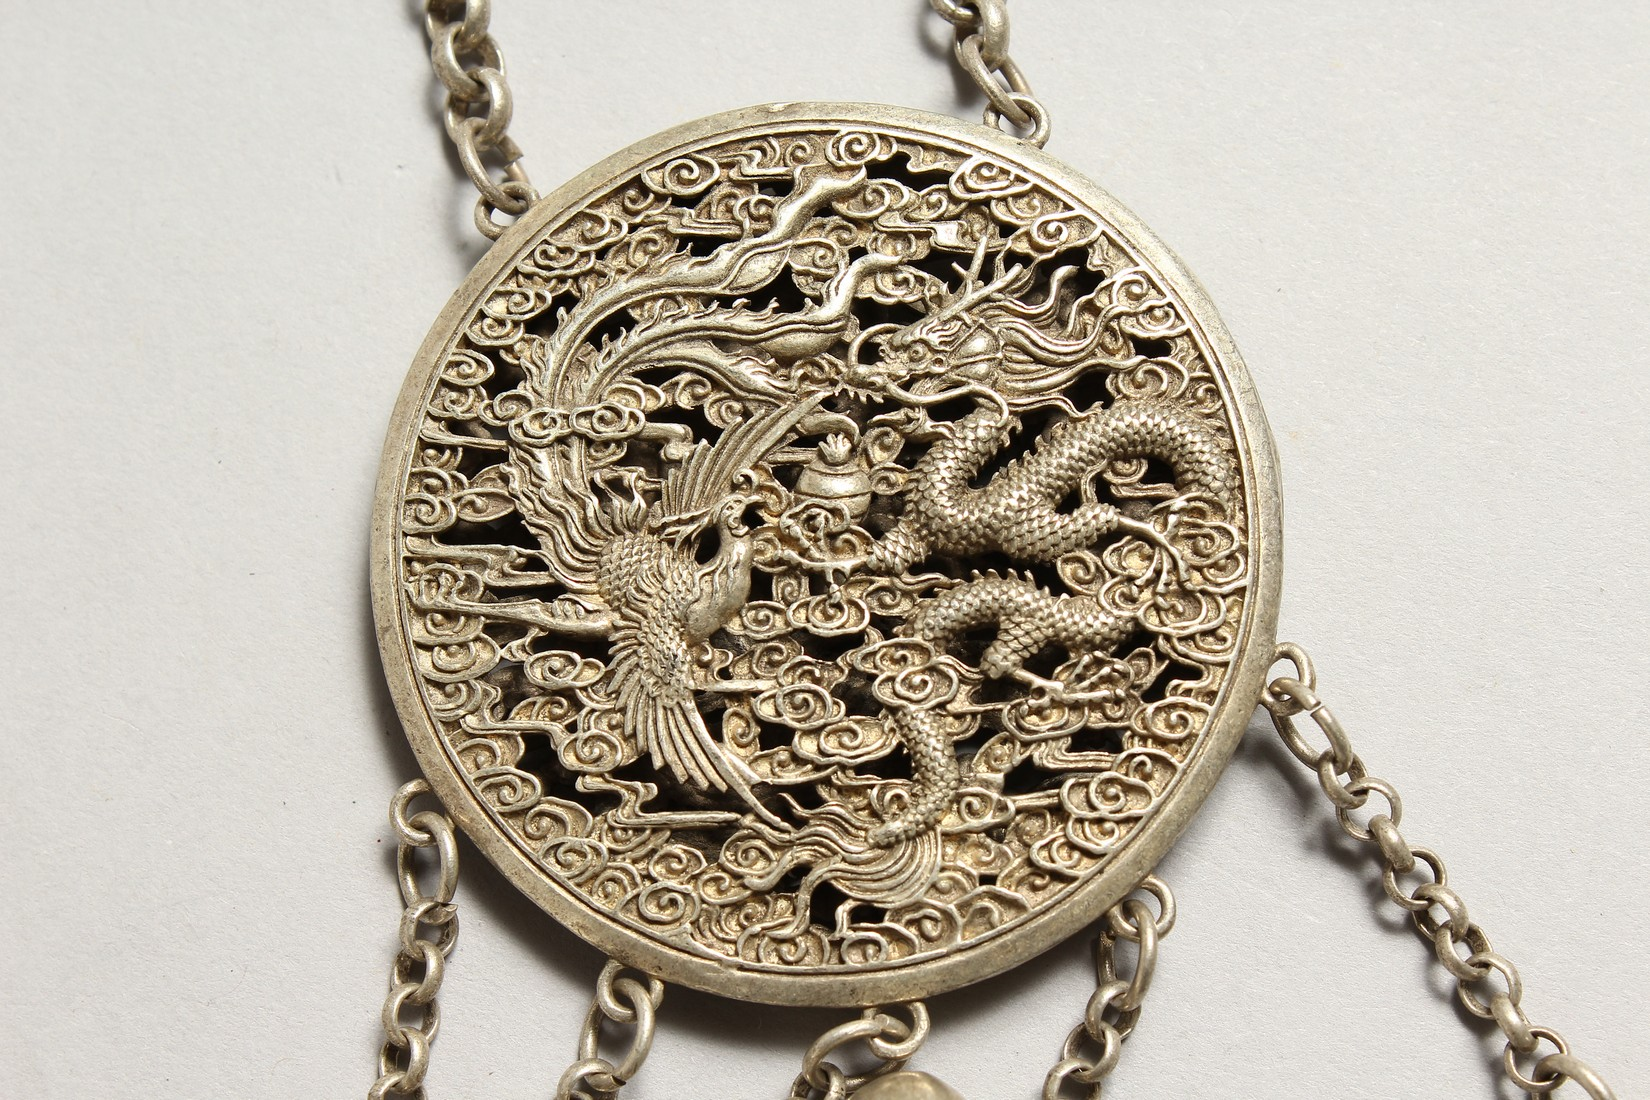 A CHINESE SILVER YIN-YANG PENDANT on a chain with dragon and phoenix. - Image 4 of 4